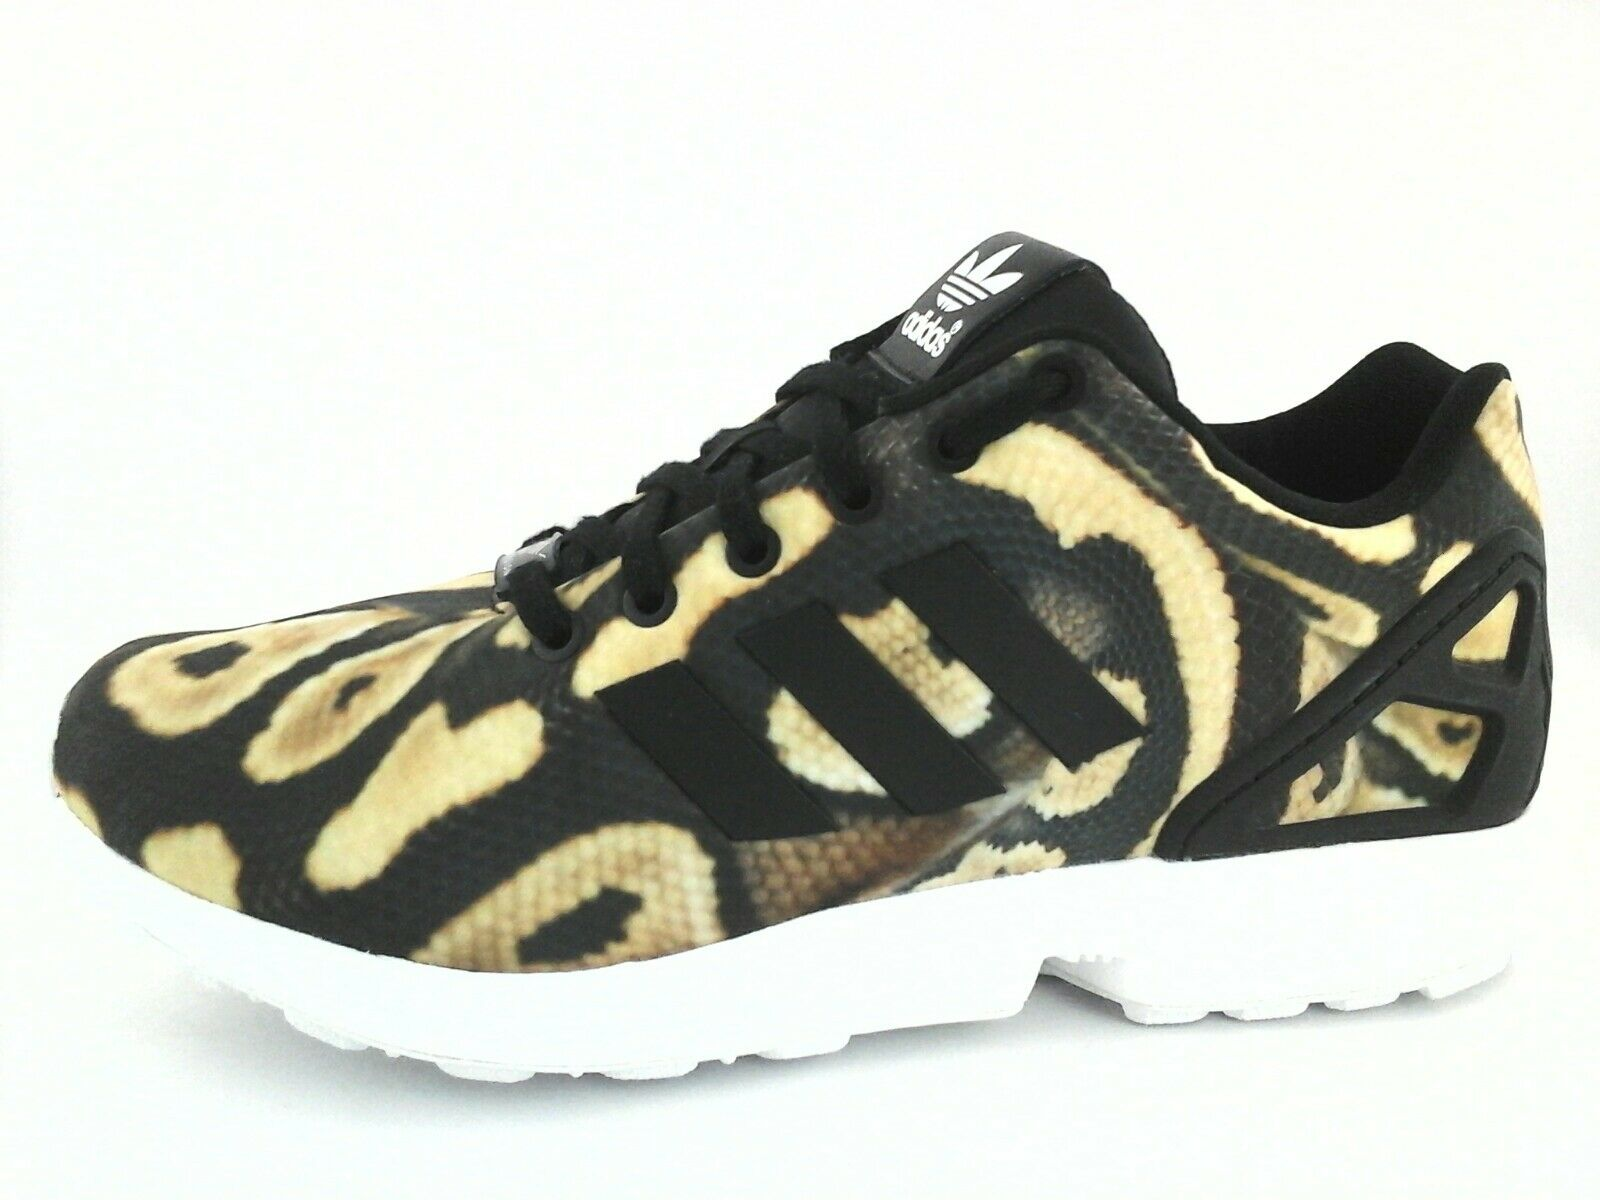 35b66f03143014 order adidas sneakers python snake zx flux shoes s77310 torsion black tan  womens new 9ad57 eb4bb